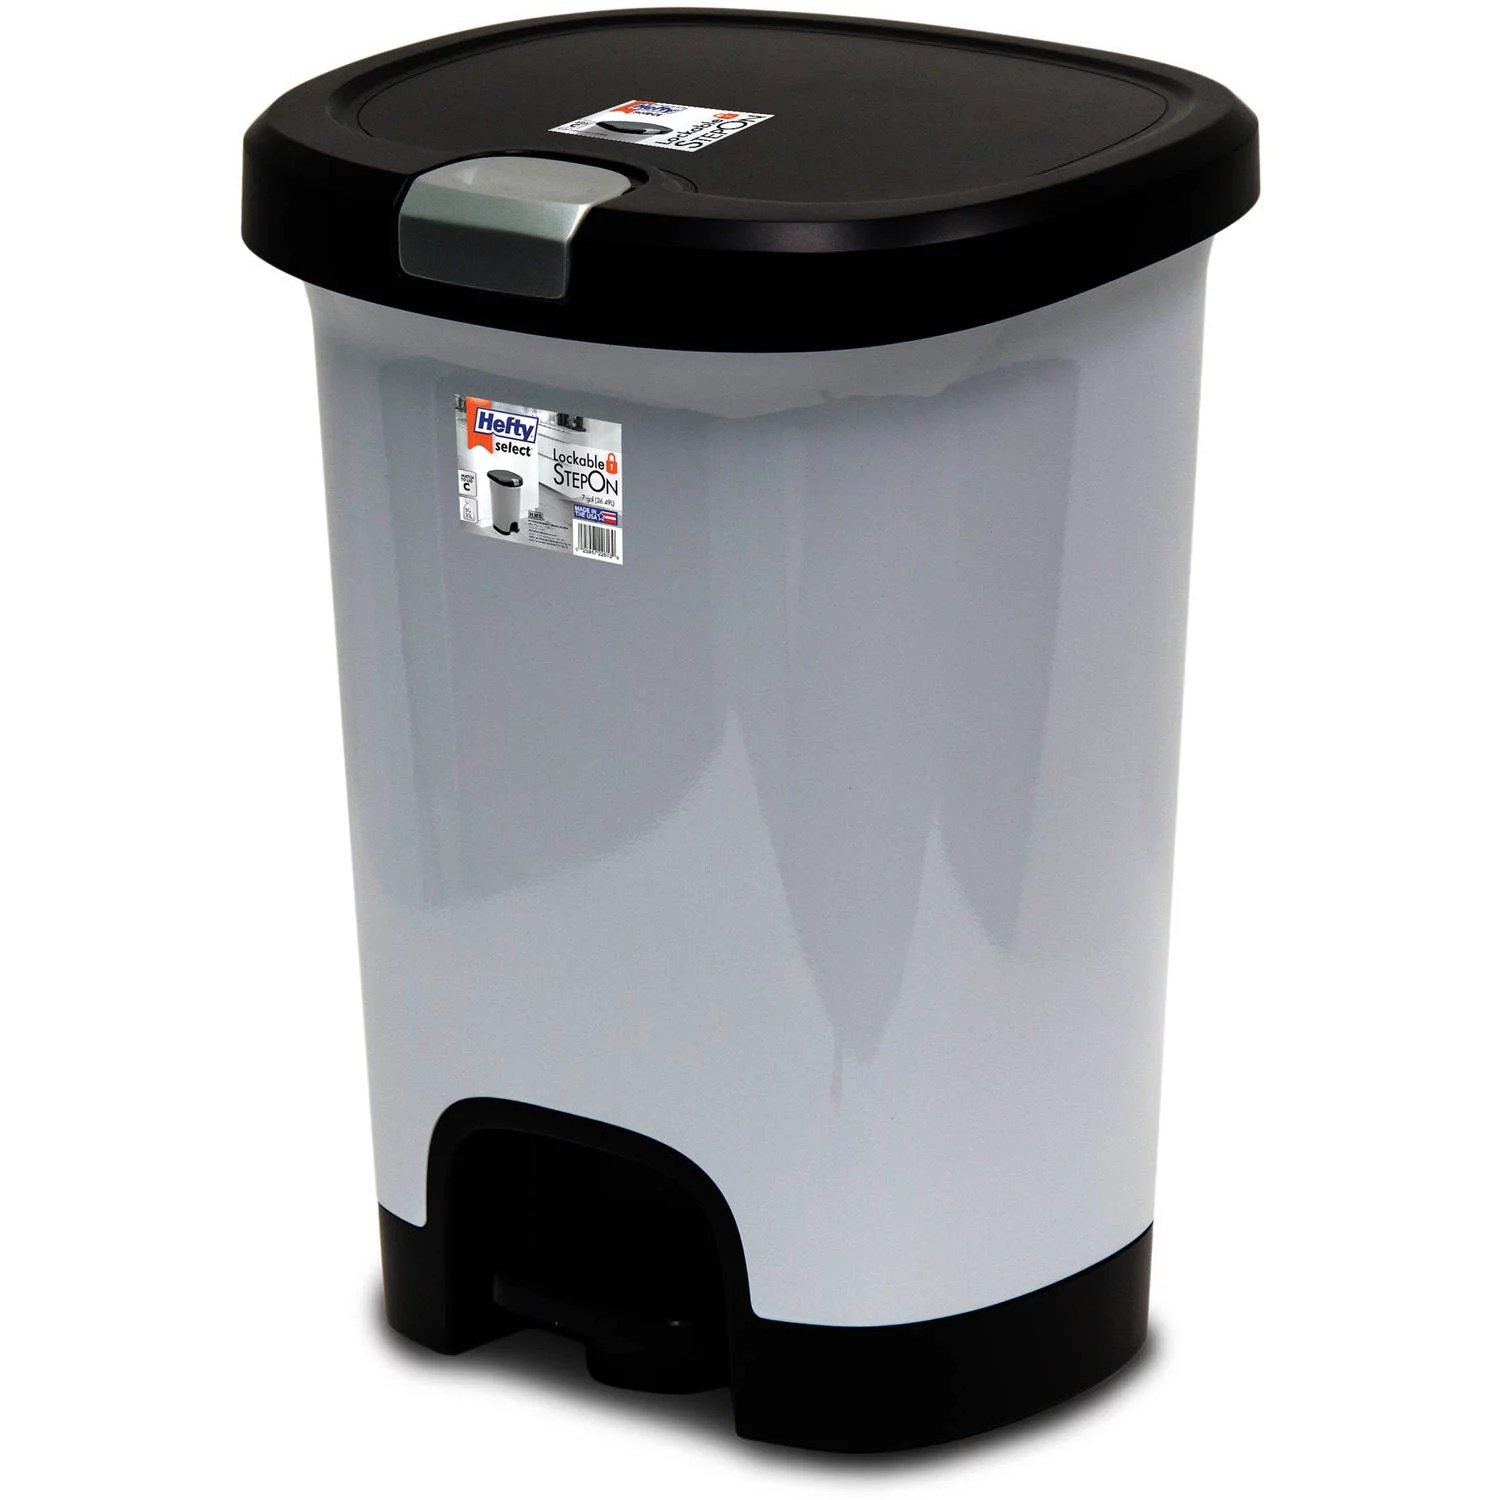 Colorful Garbage Cans Hefty 7 Gal Textured Step On Trash Can With Lid Lock And Bottom Cap Multiple Colors